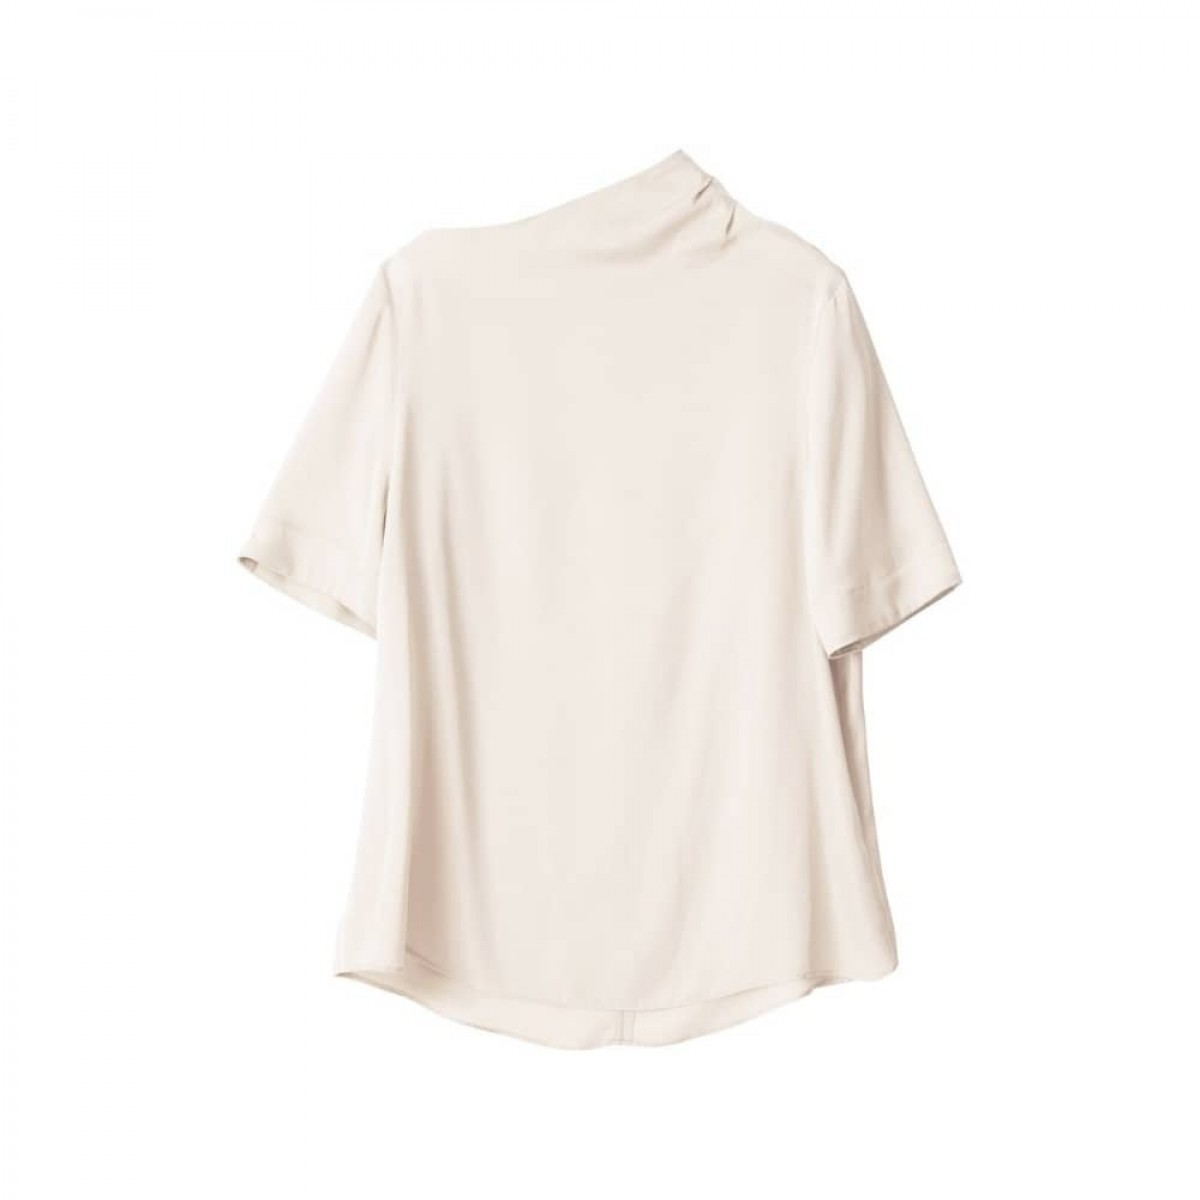 lima tee - off white - front